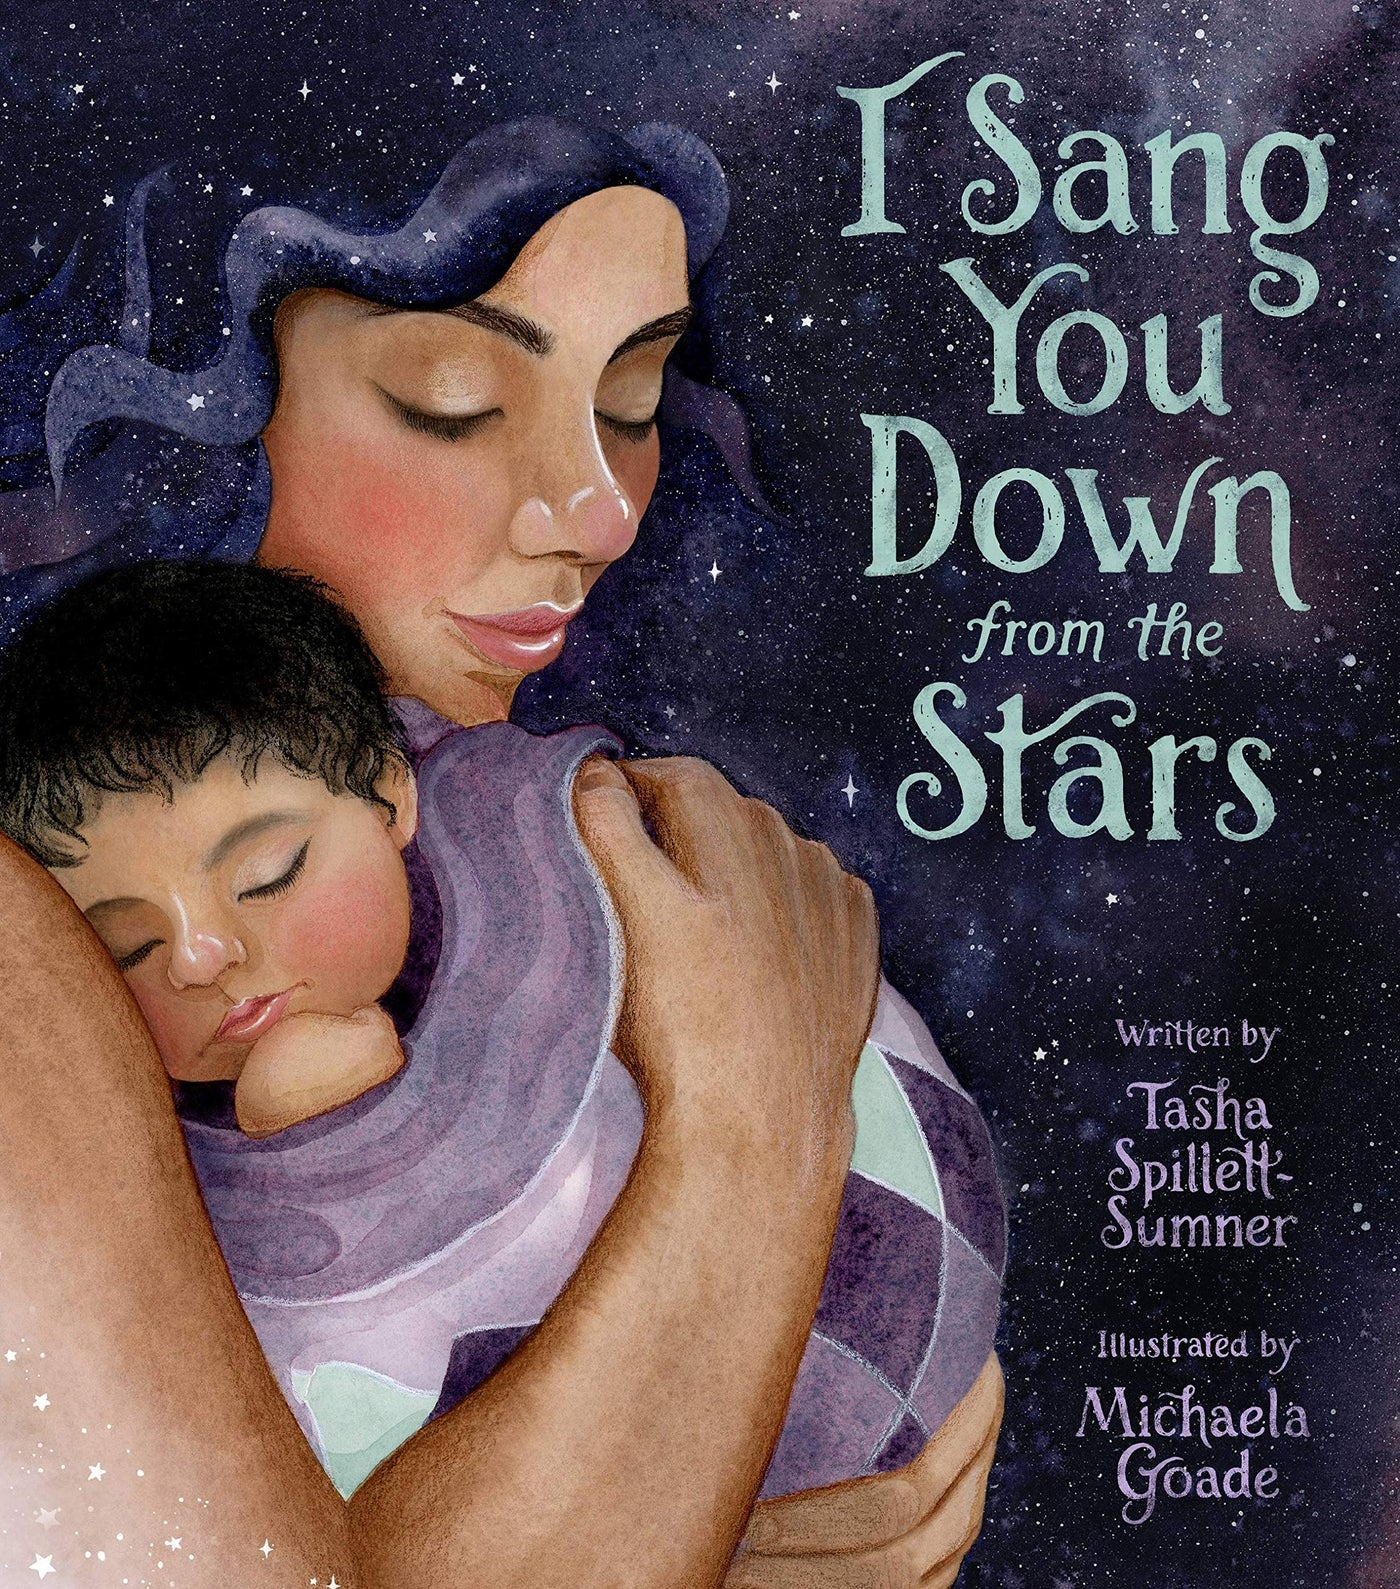 I Sang You Down from the Stars, by Tasha Spillett-Sumner, illustrated by Michela Goade